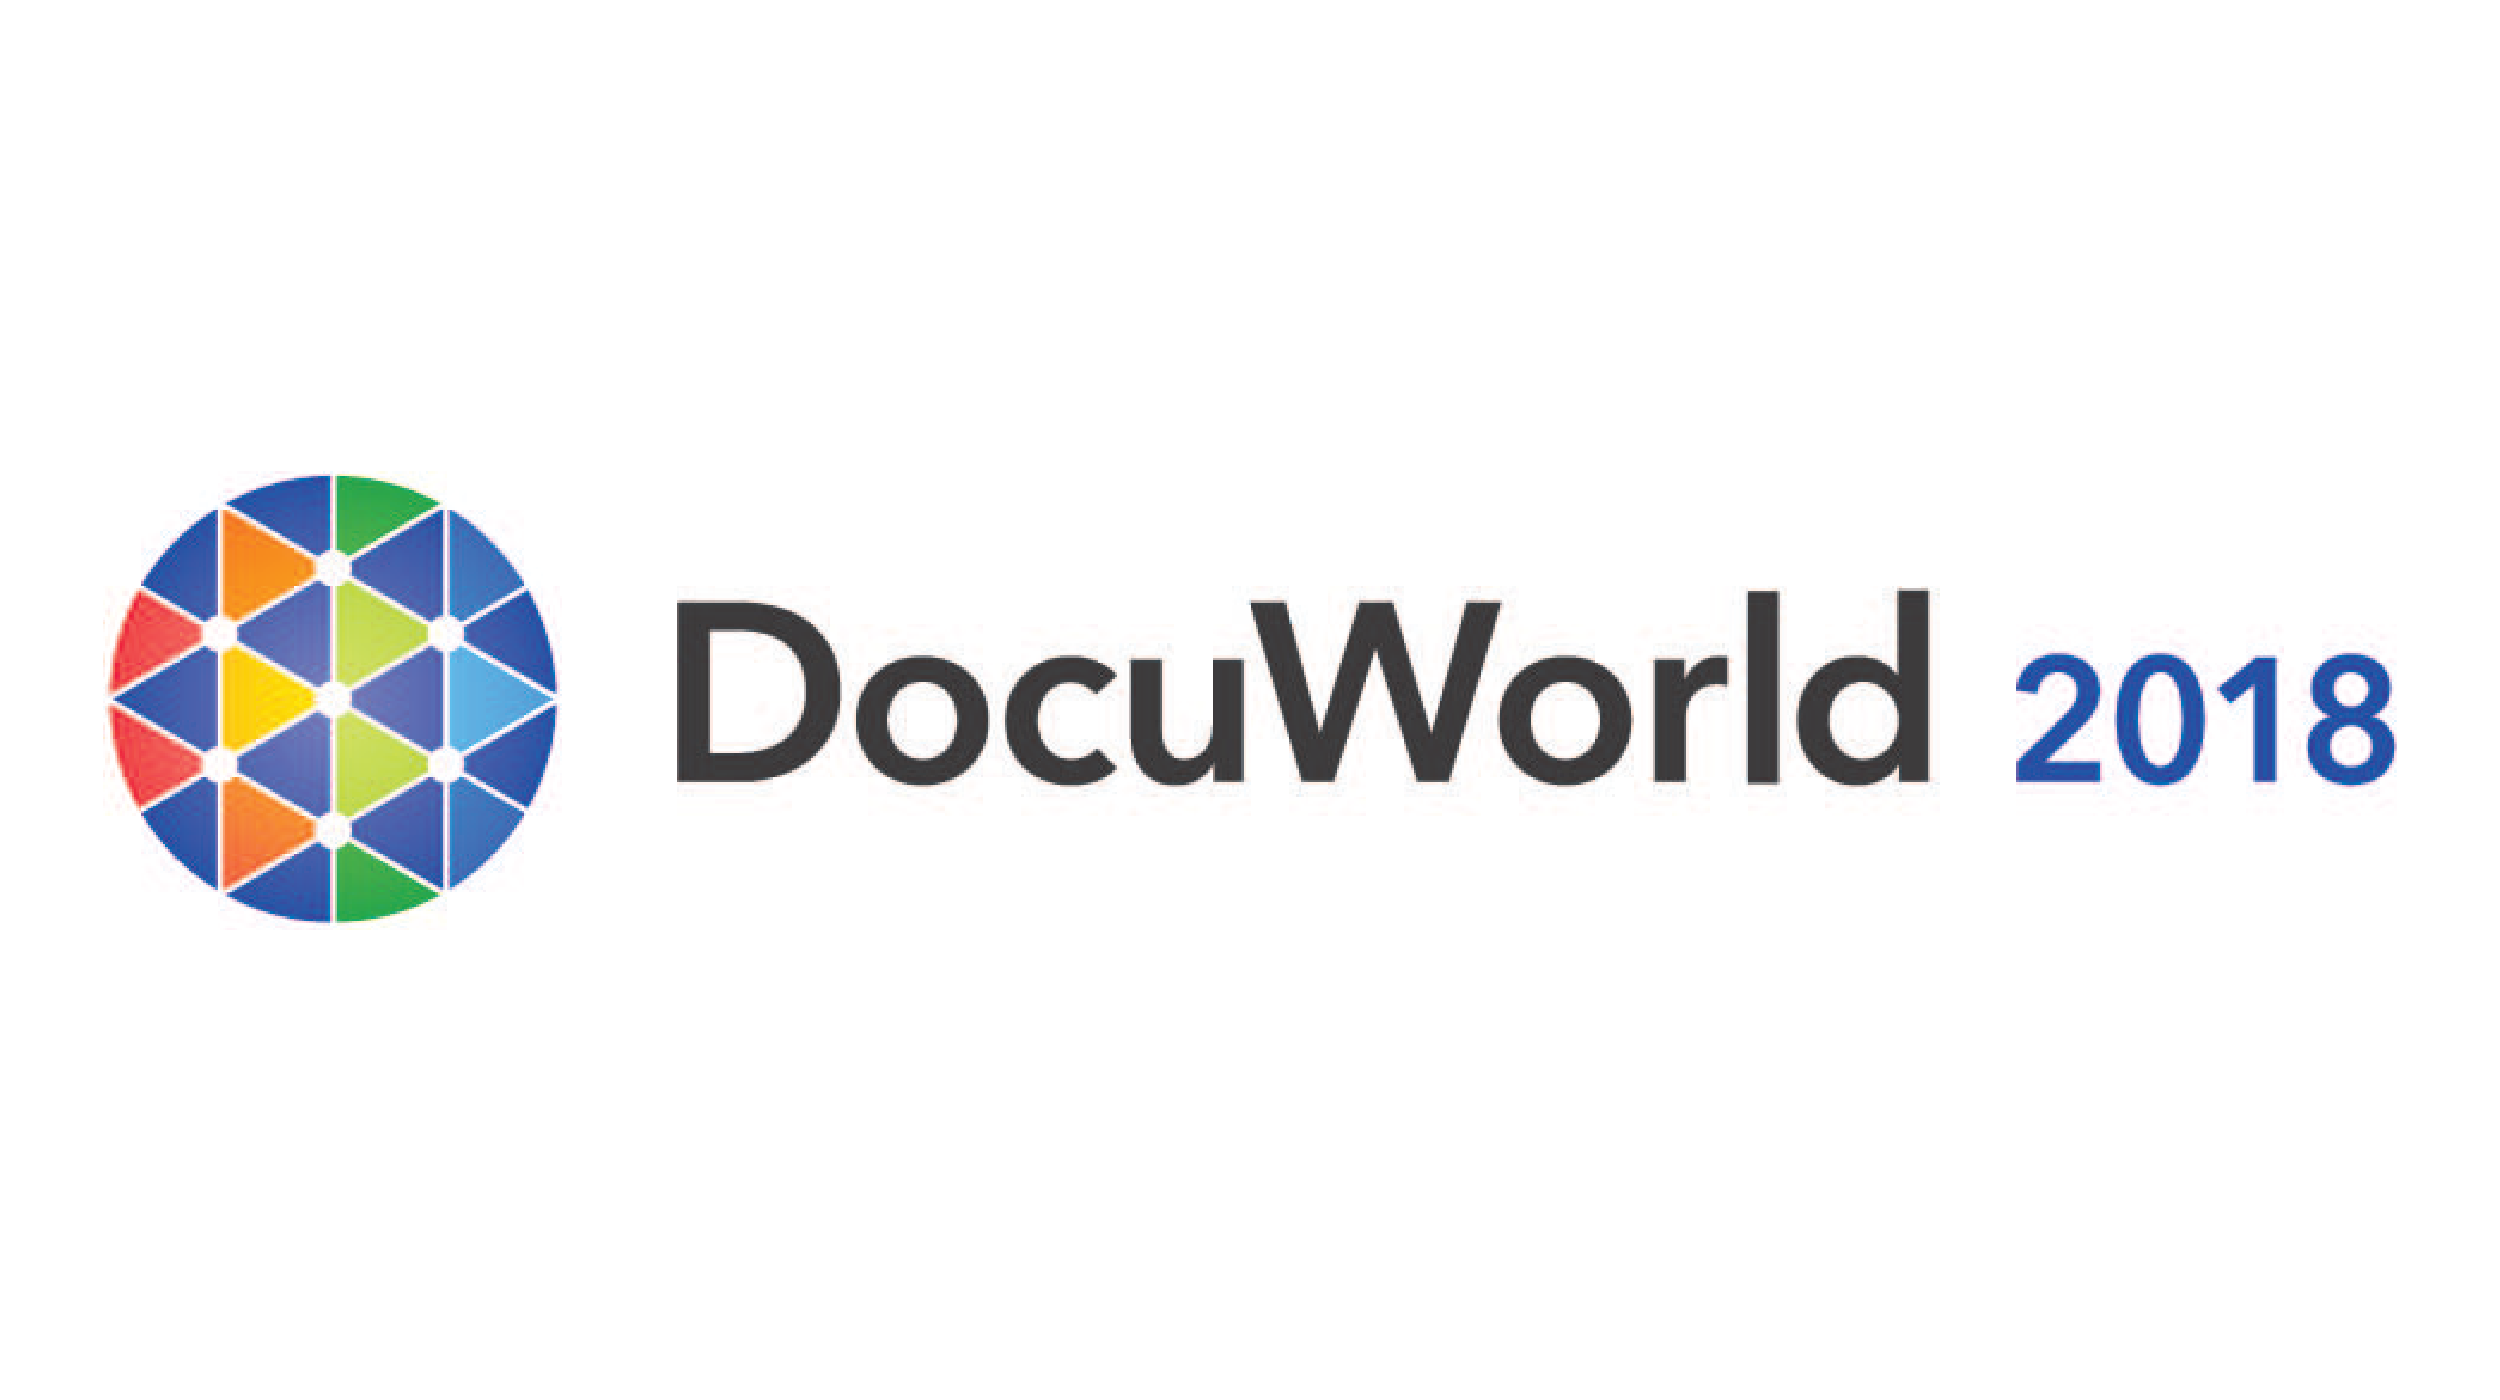 DocuWorld Logo - Square - CMYK - 72 dpi-2